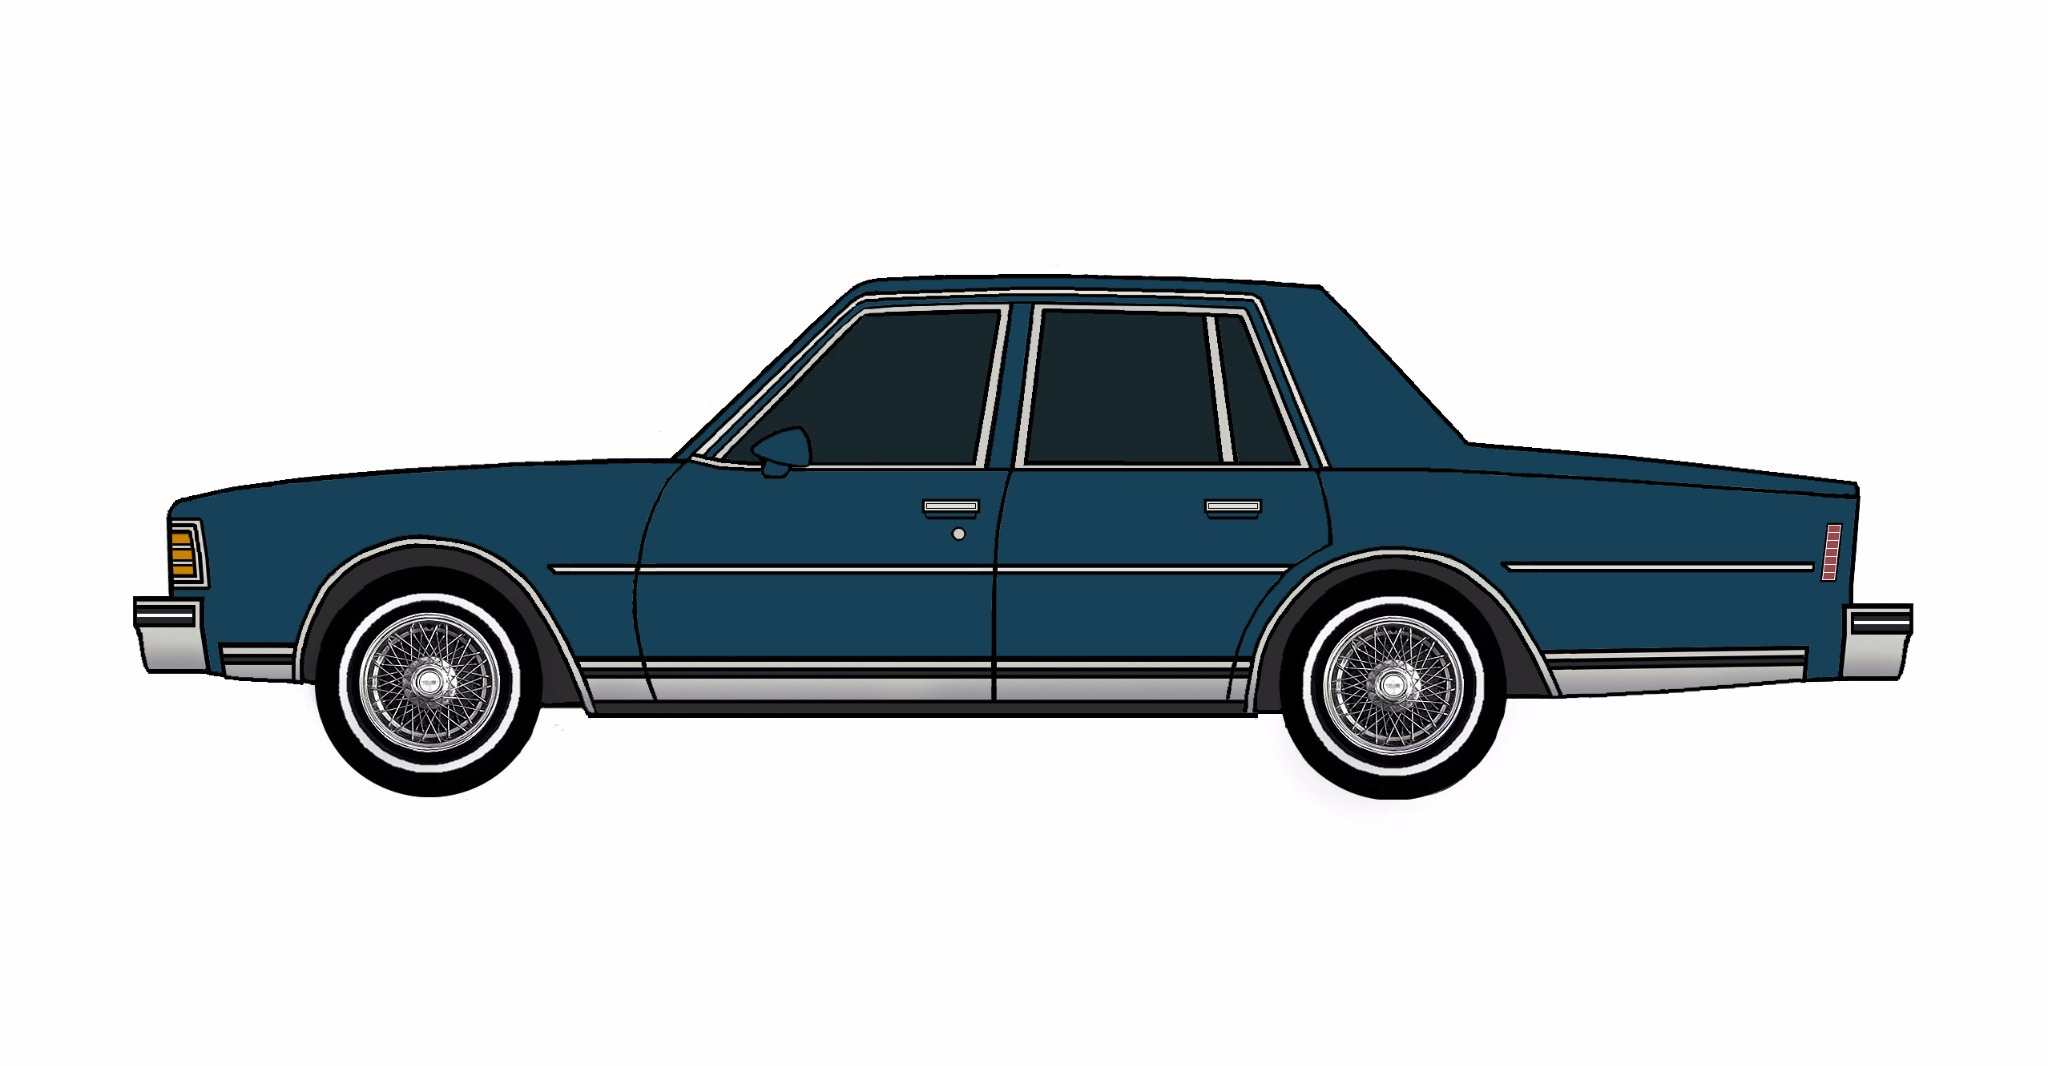 1979 Chevy Caprice MIDNIGHT BLUE